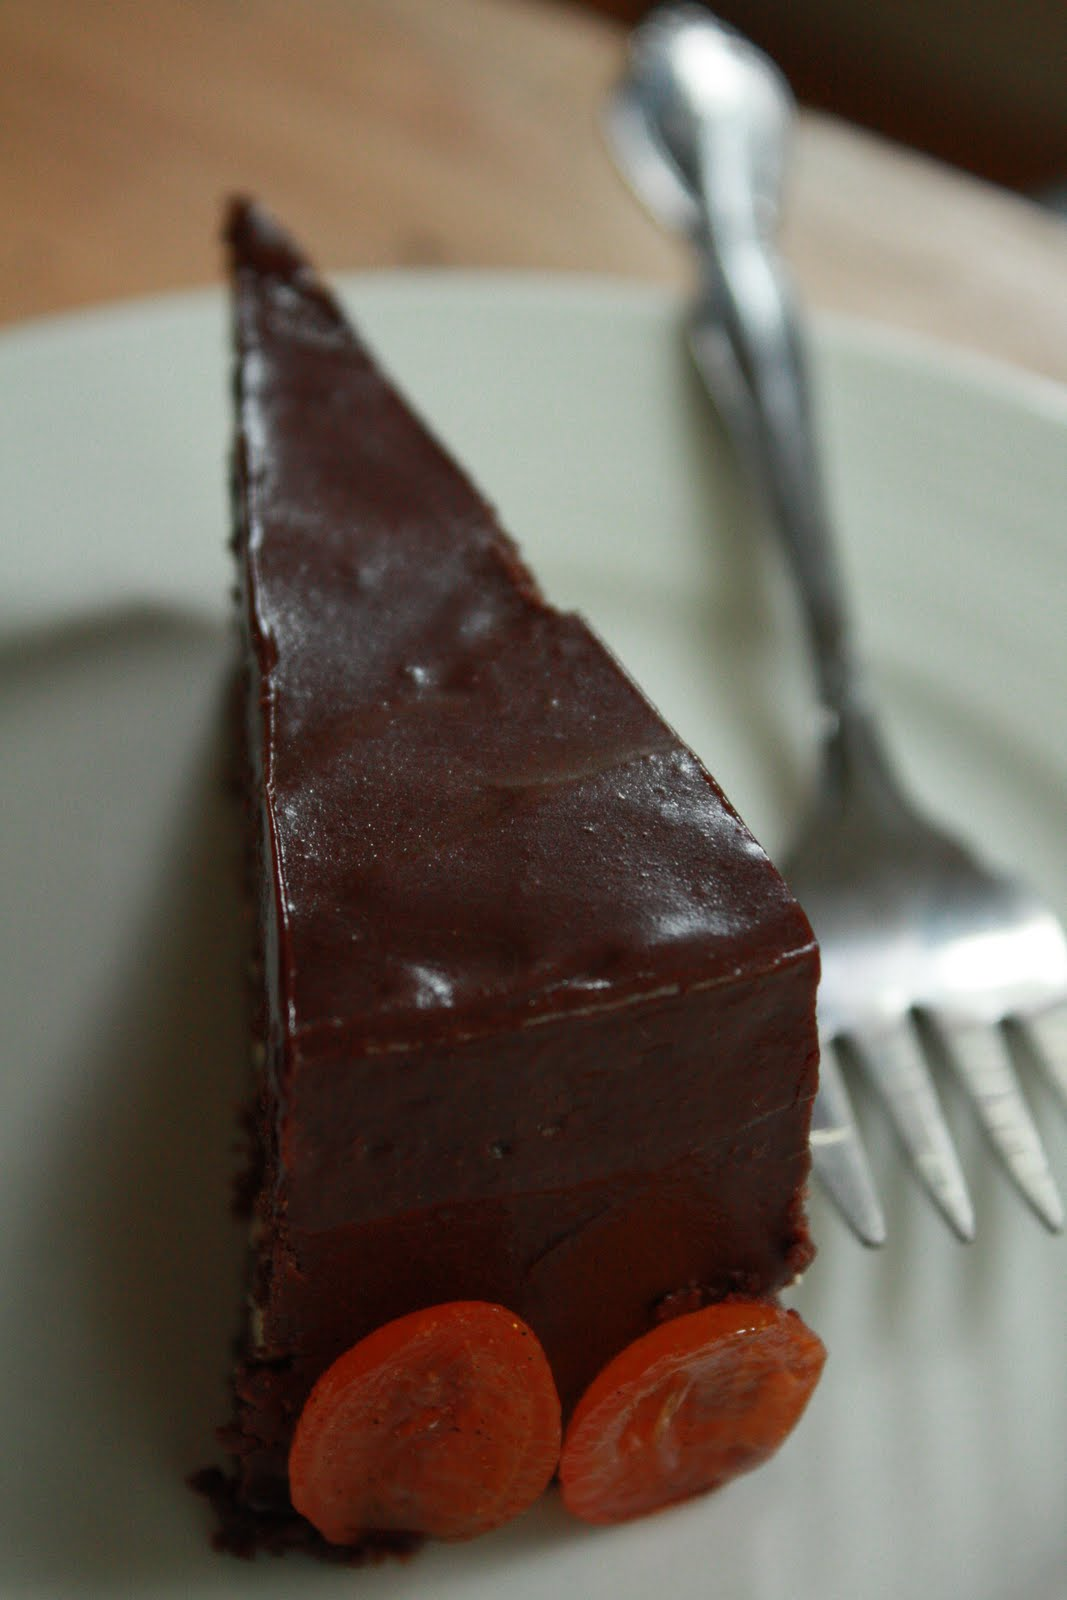 ... orange gluten free chocolate genoise gluten free chocolate cake gluten